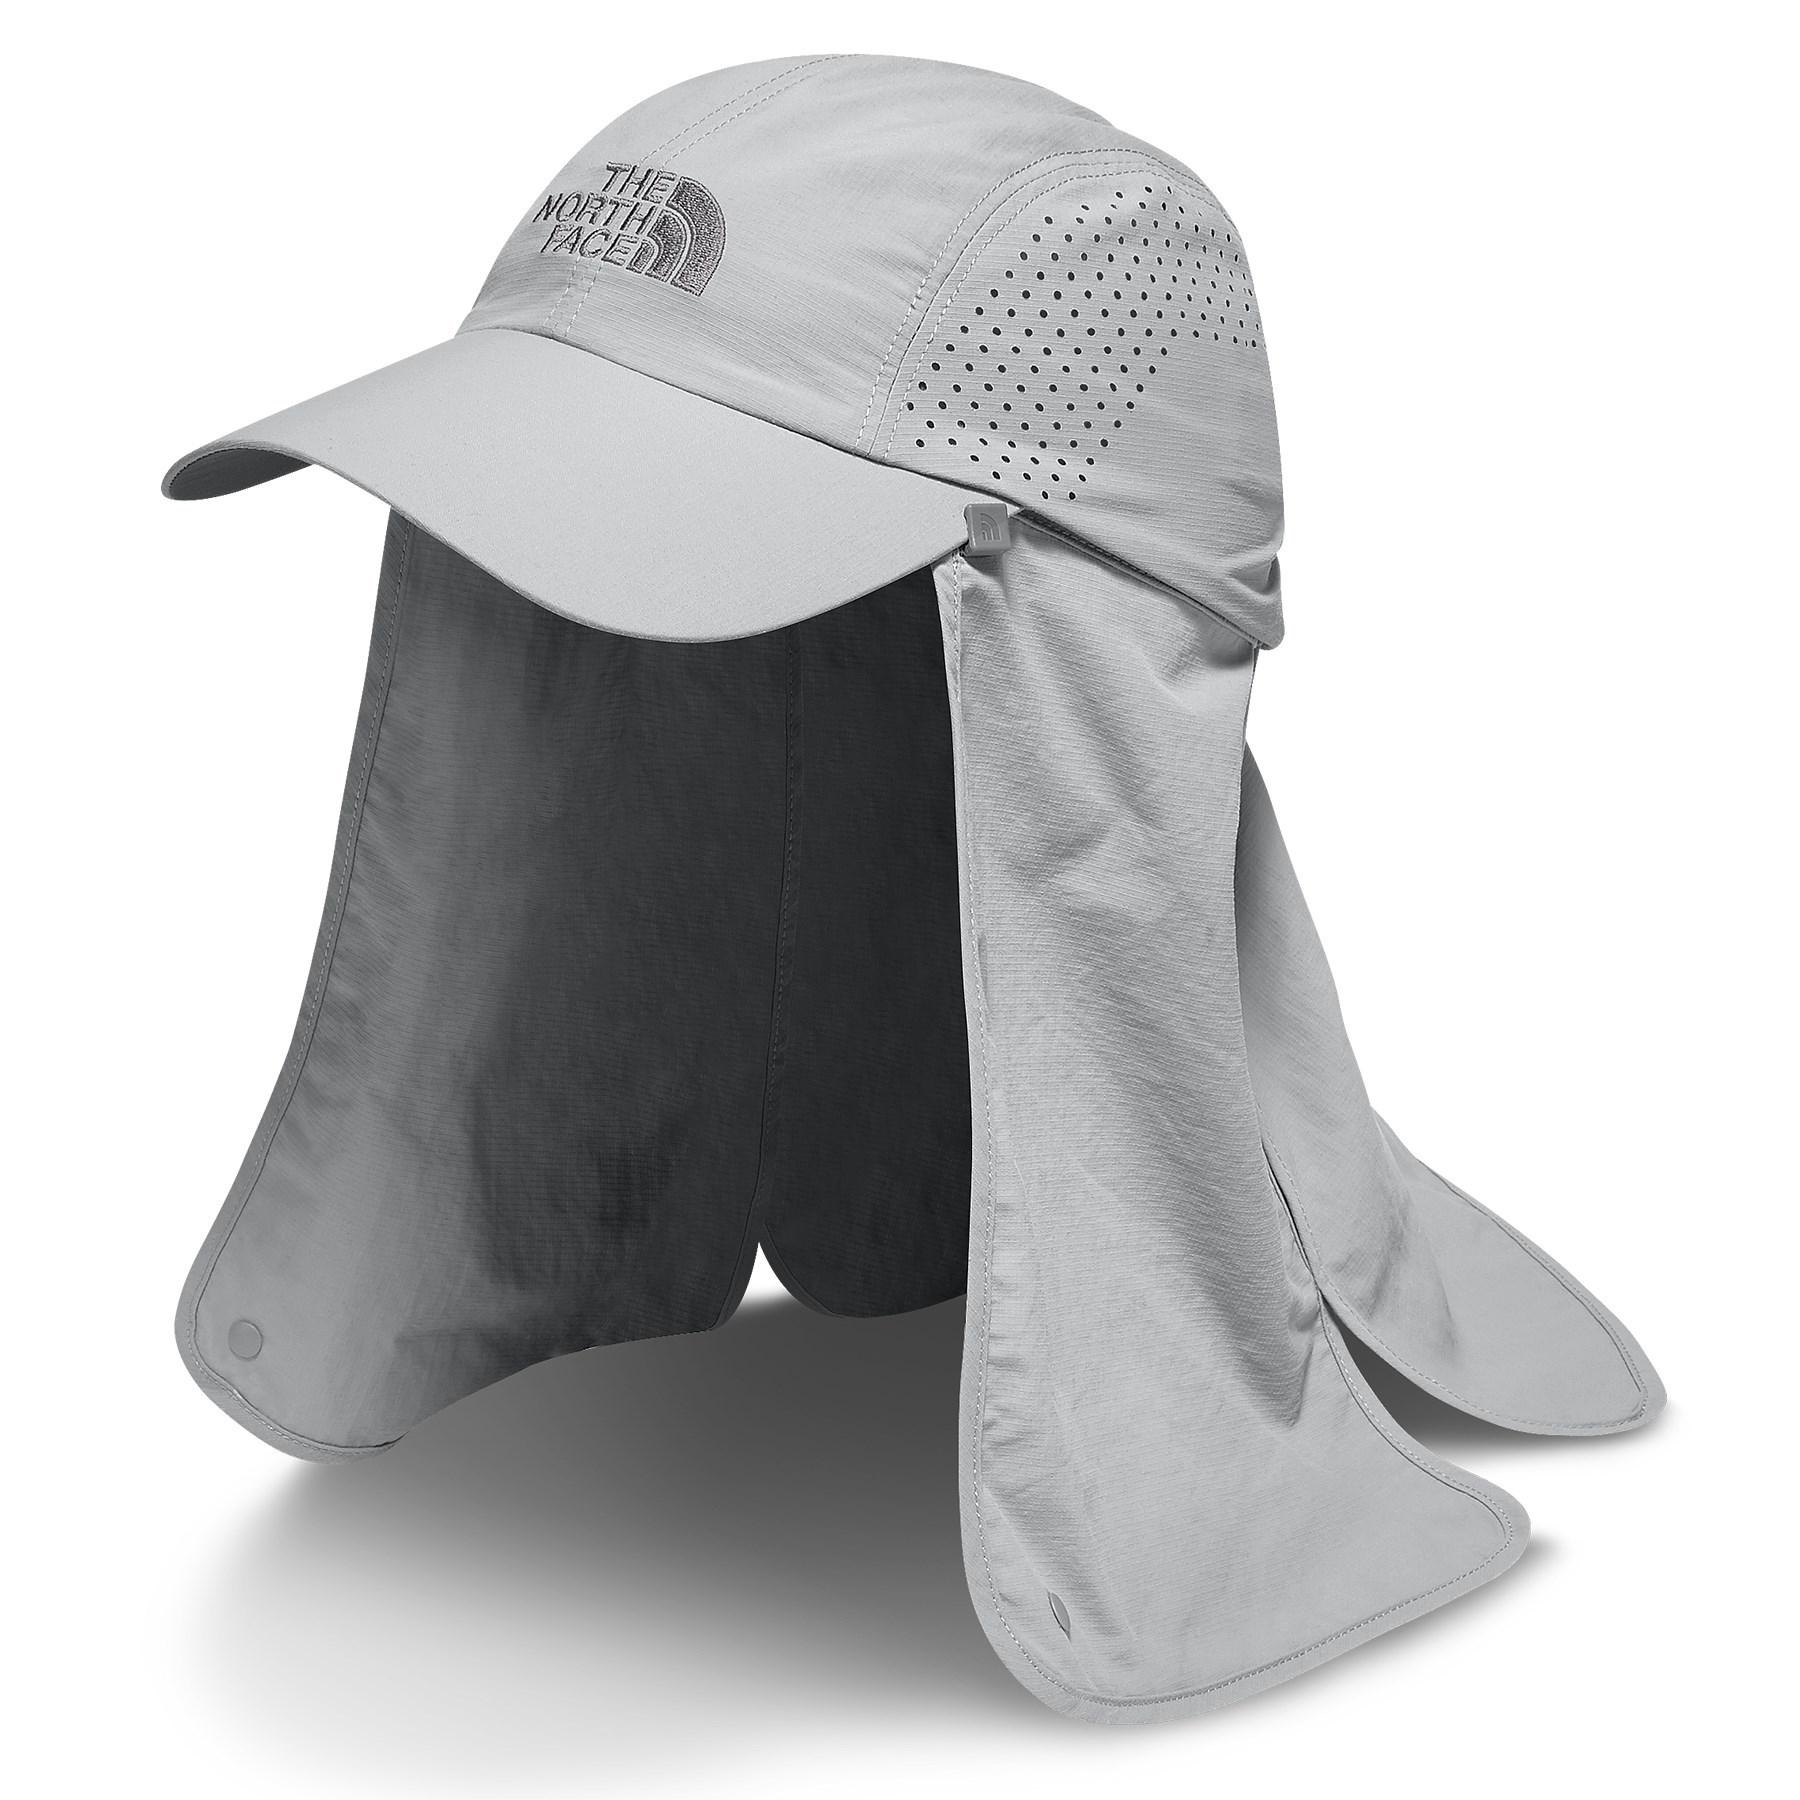 f83b708f4c3 Lyst - The North Face Sun Shield Ball Cap (for Men) in Gray for Men